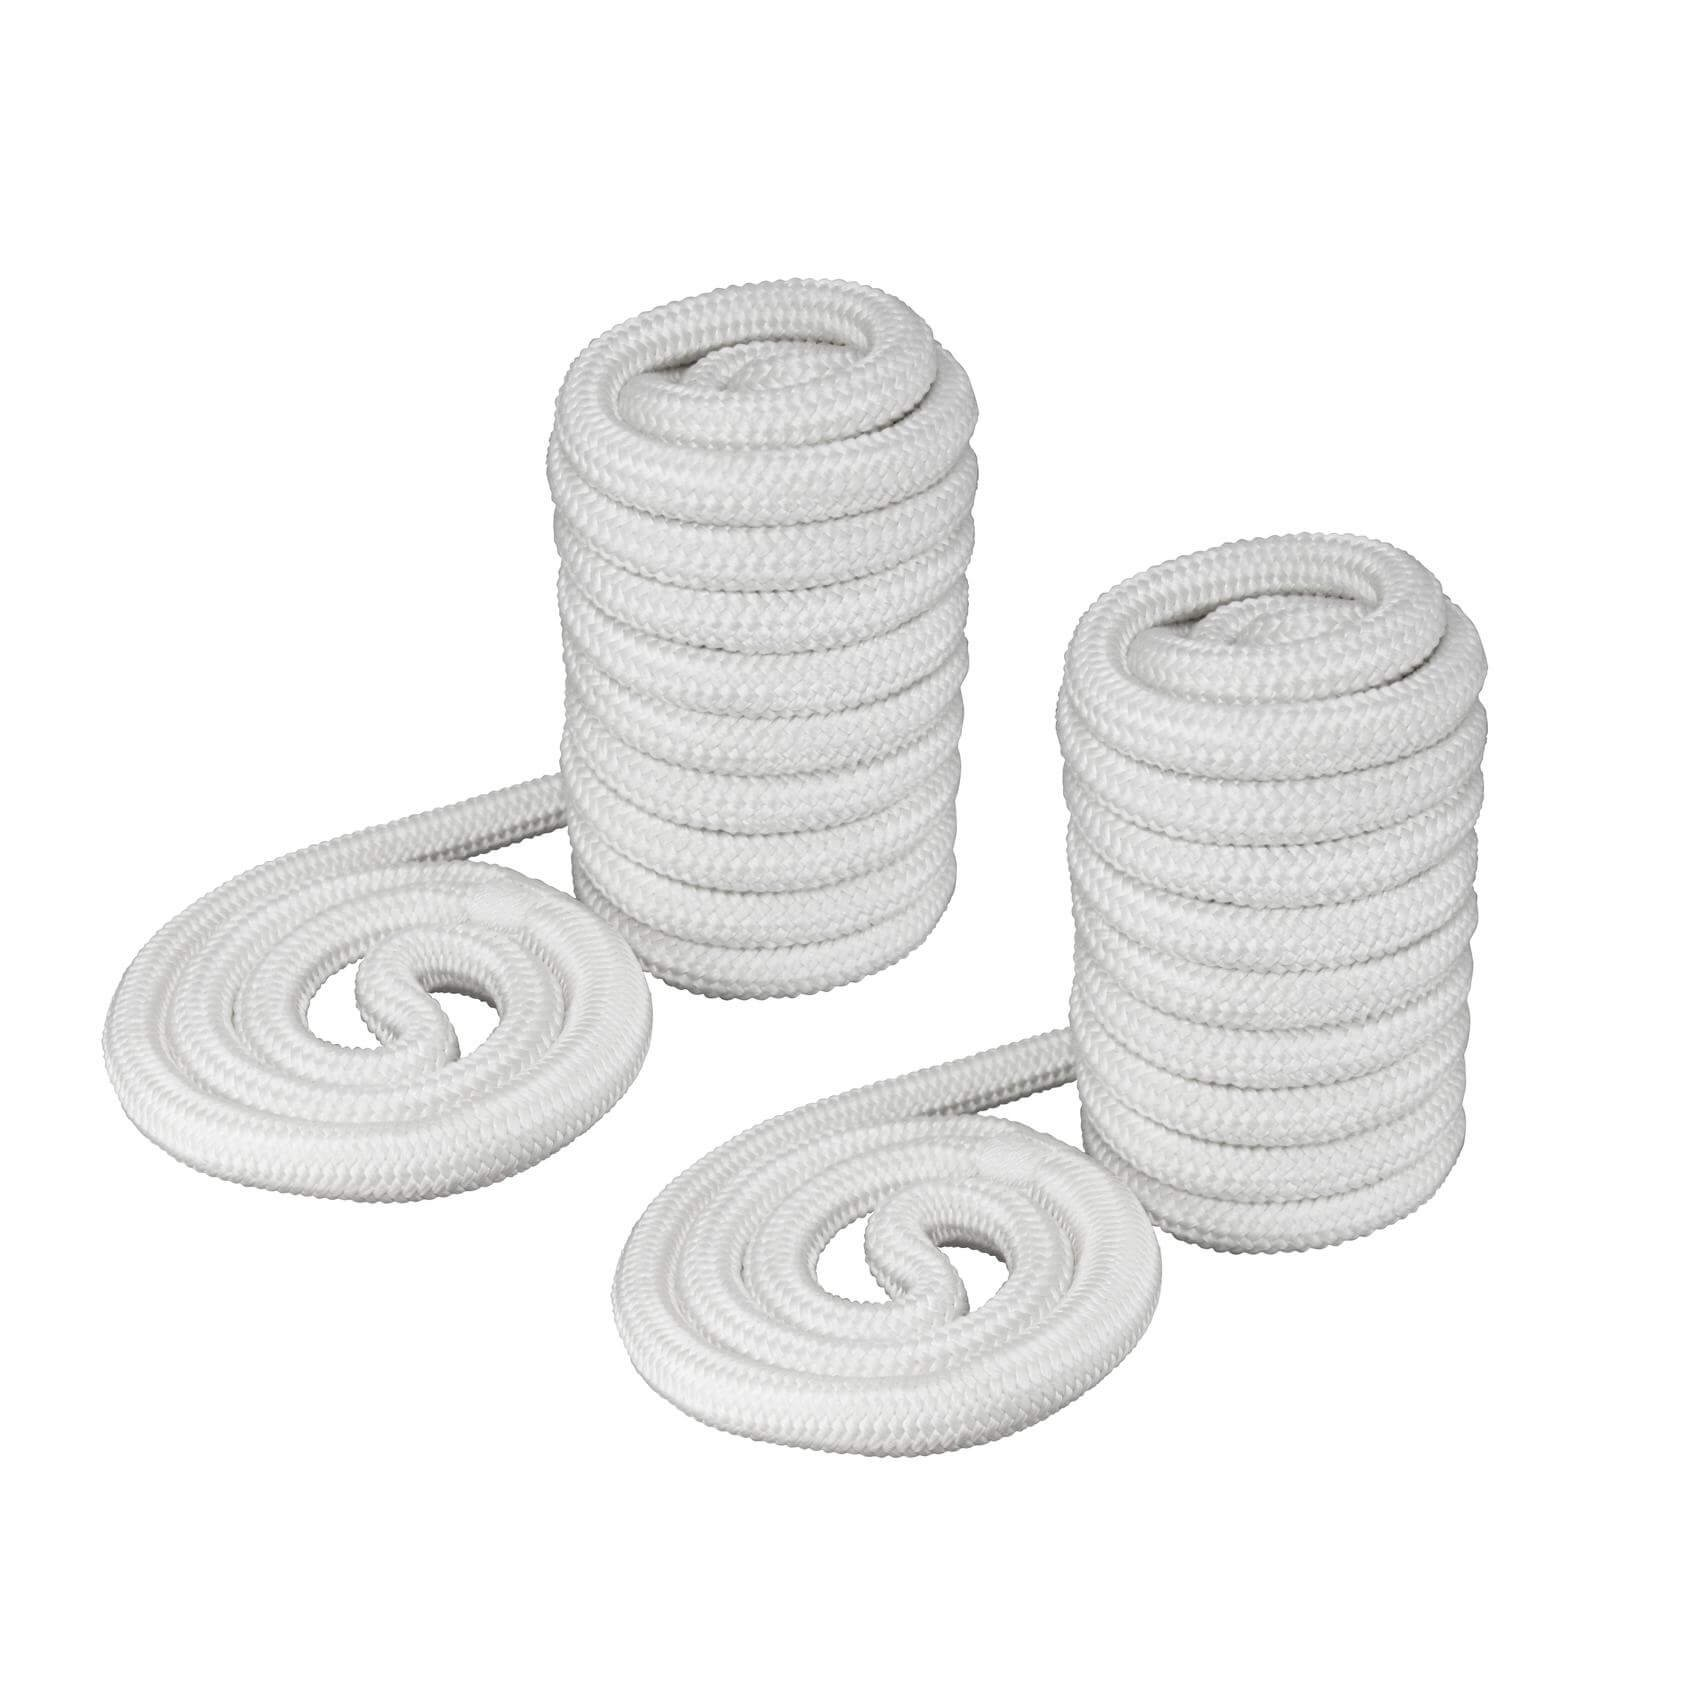 Norestar Set of Two Marine Double Braided Nylon Dock Lines for Boat, White